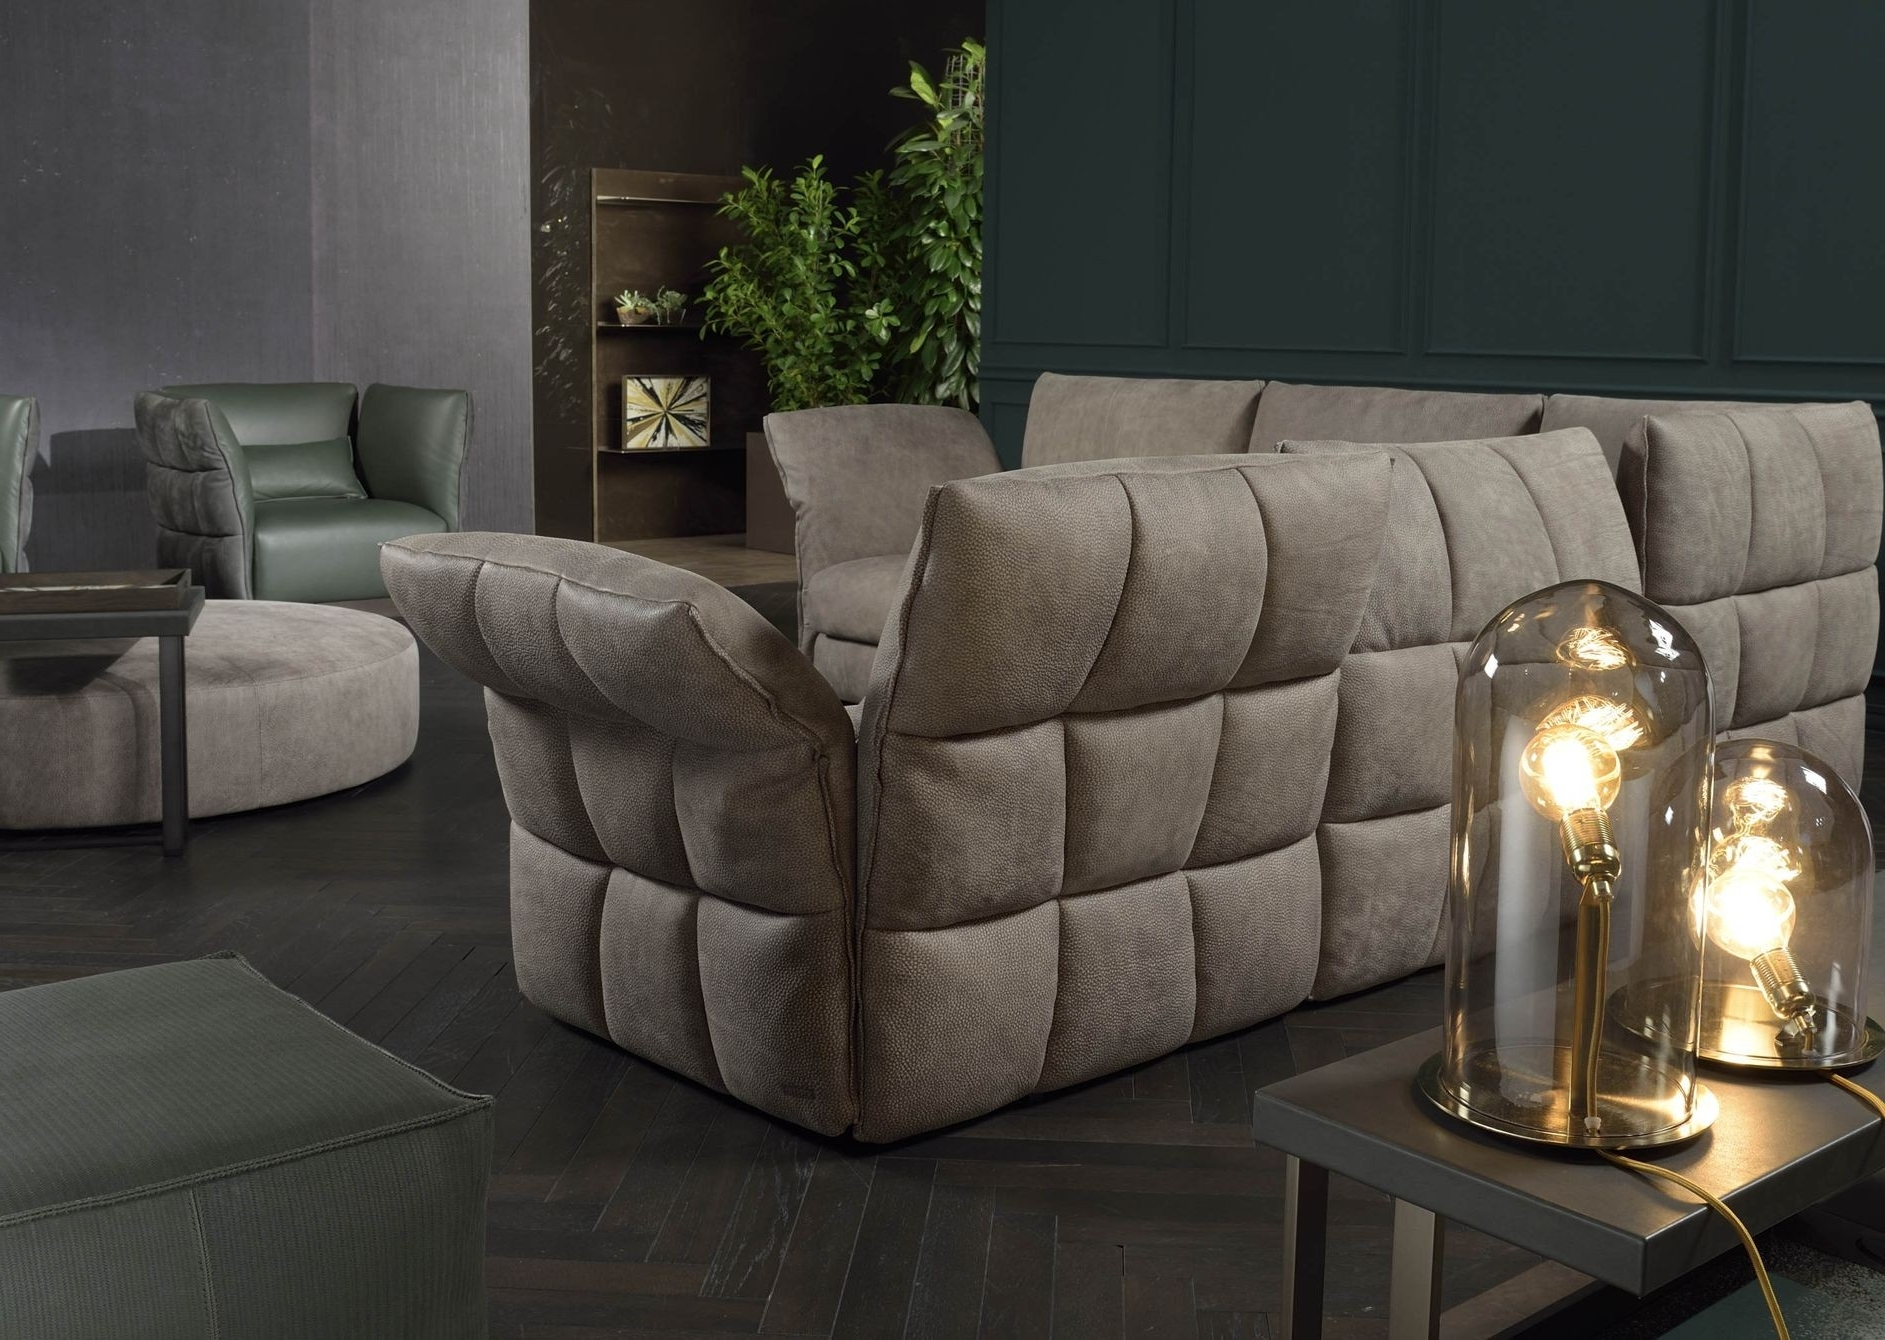 Eva Due Modern Sectional Sofa (View 12 of 15)